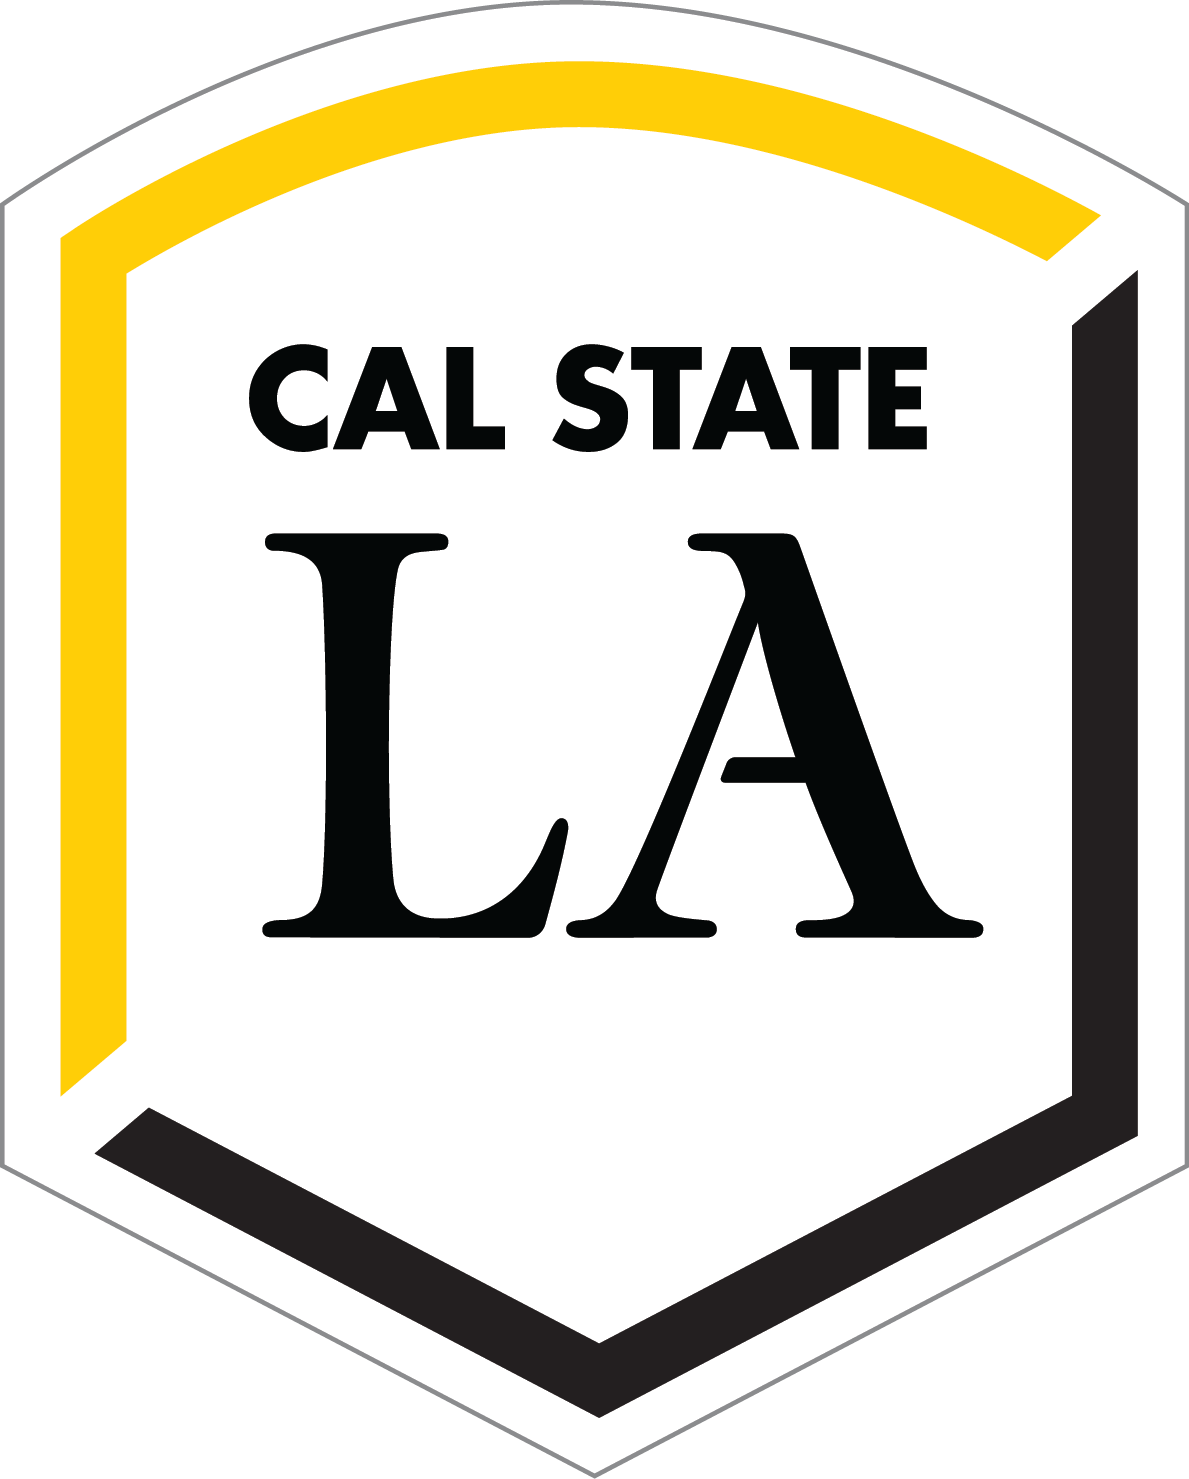 CalStateLAlogo_badge_white.png